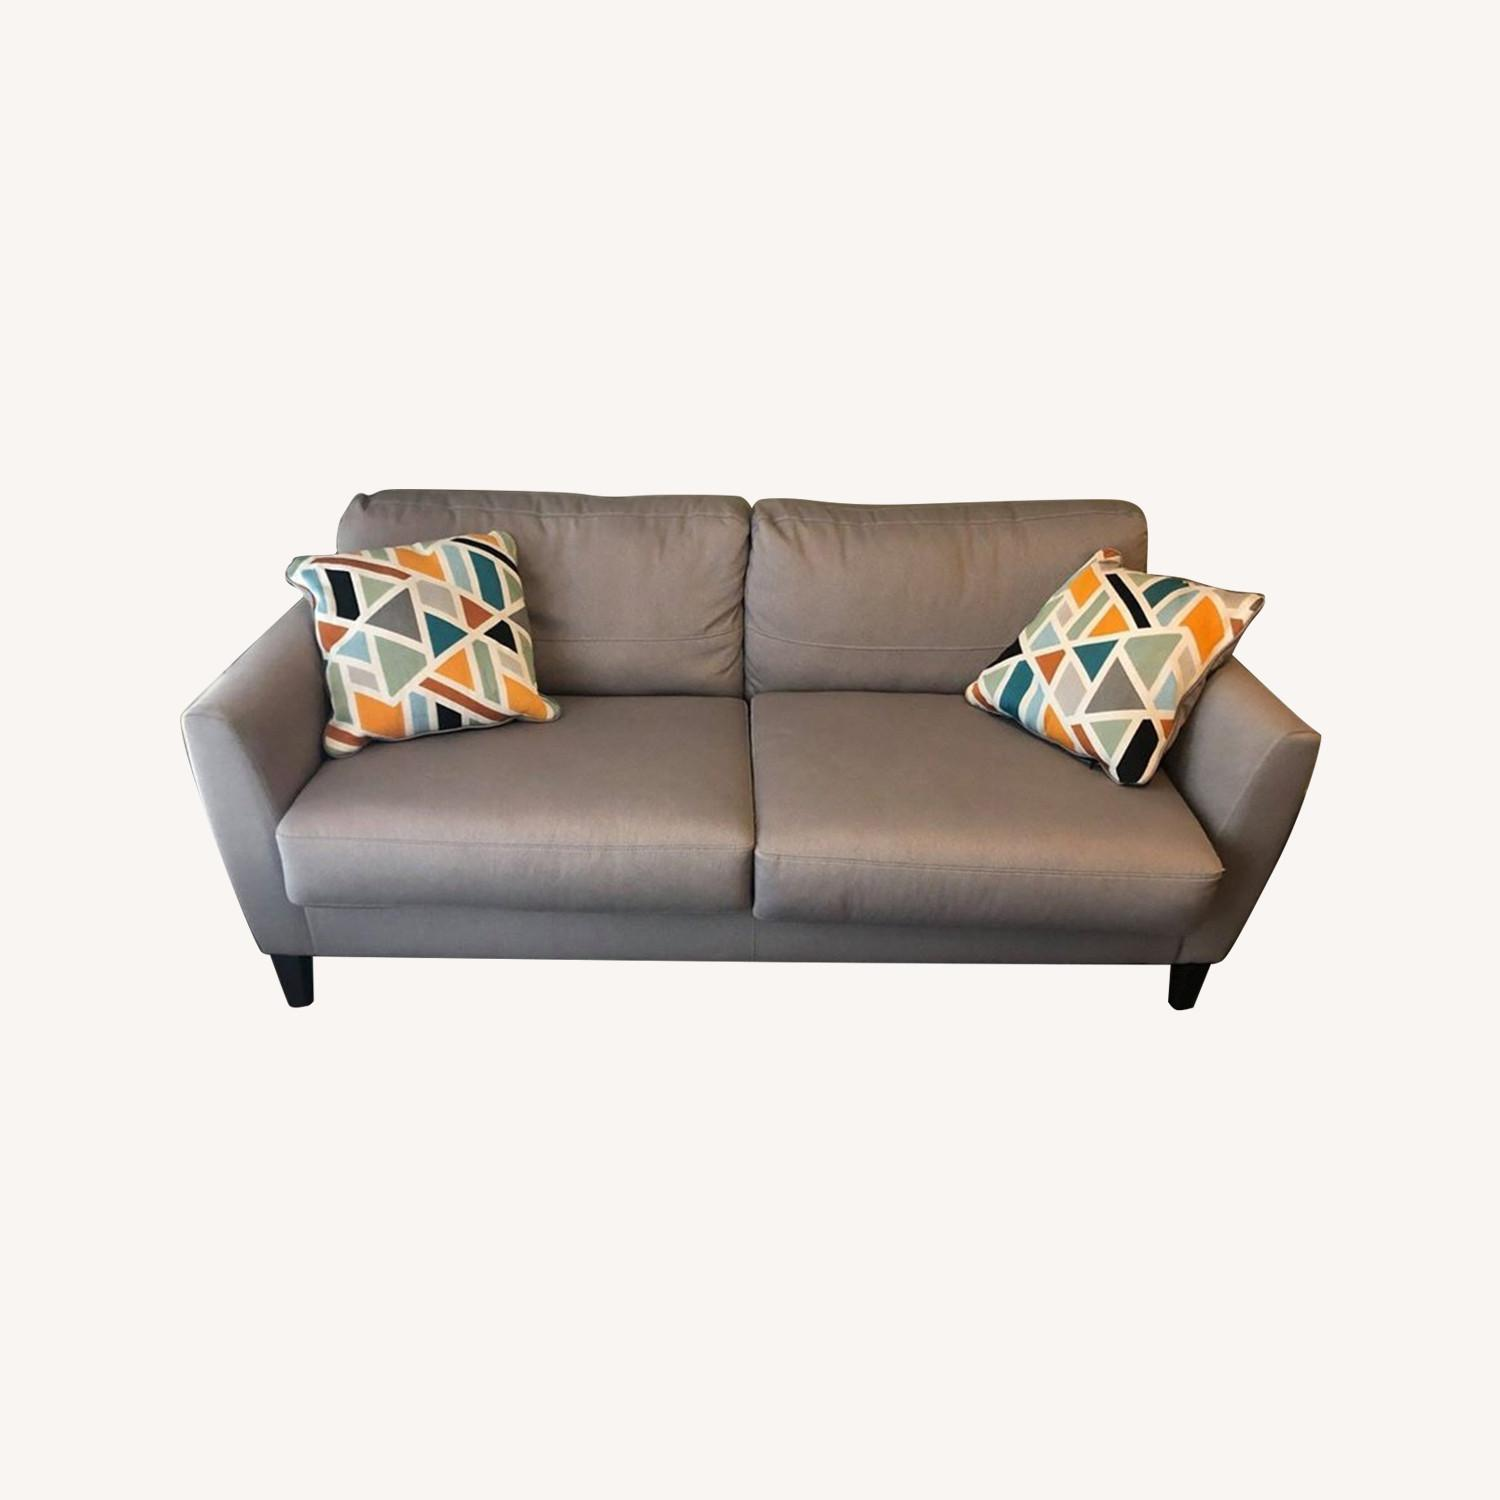 Ashley Furniture Comfortable Grey Couch - image-0